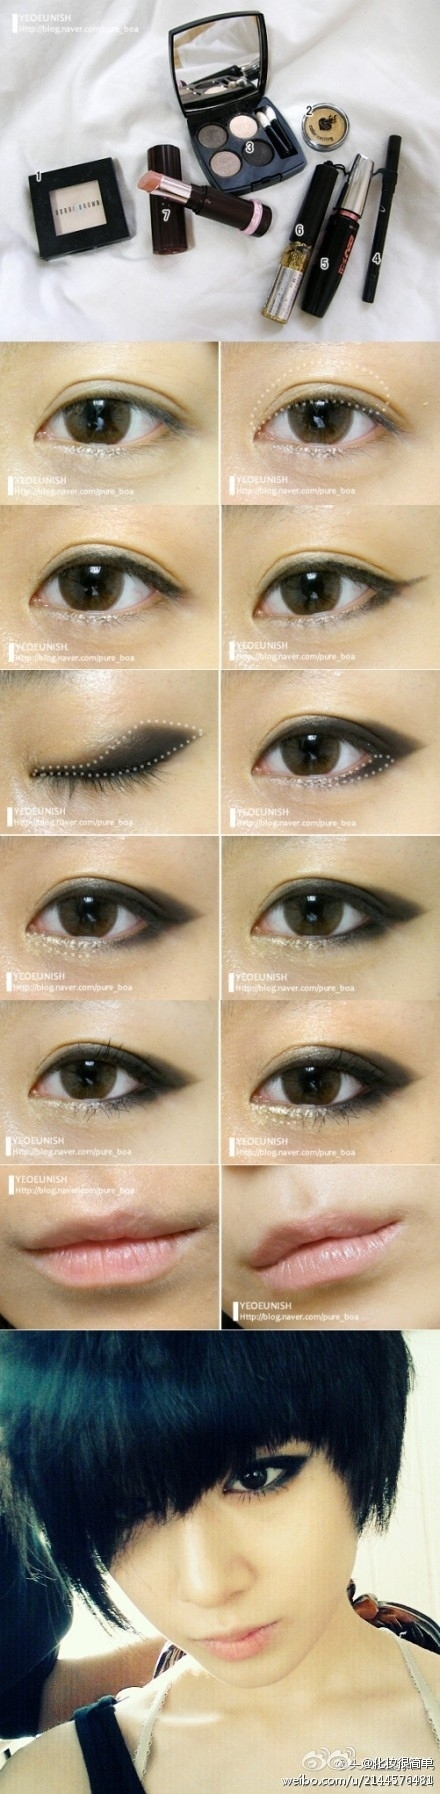 hight resolution of apply black eyeshadow in a whale shape to create this winged smoky eye look